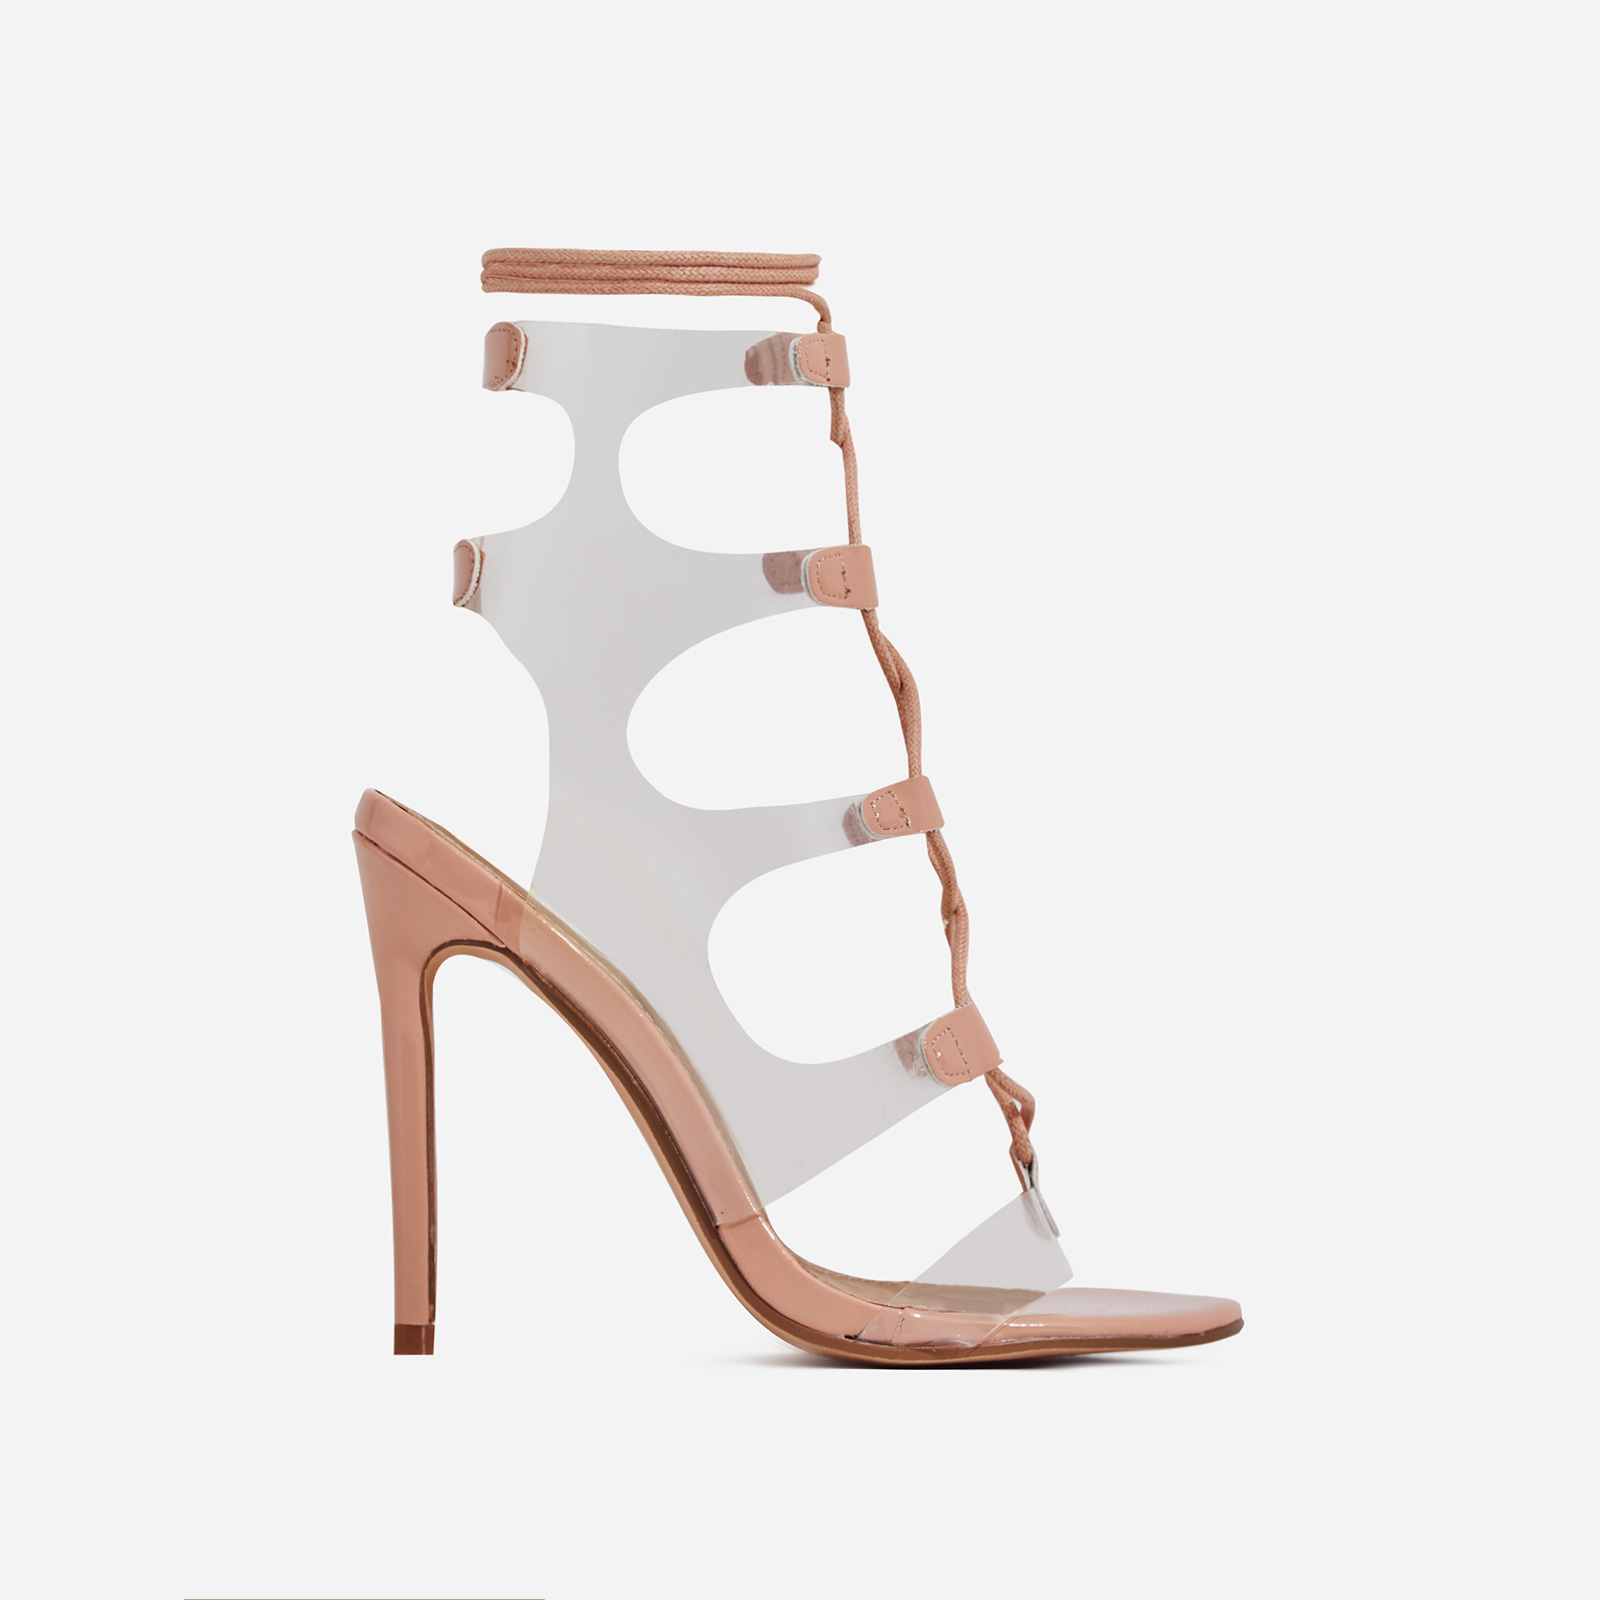 Solstice Lace Up Perspex Heel In Nude Patent